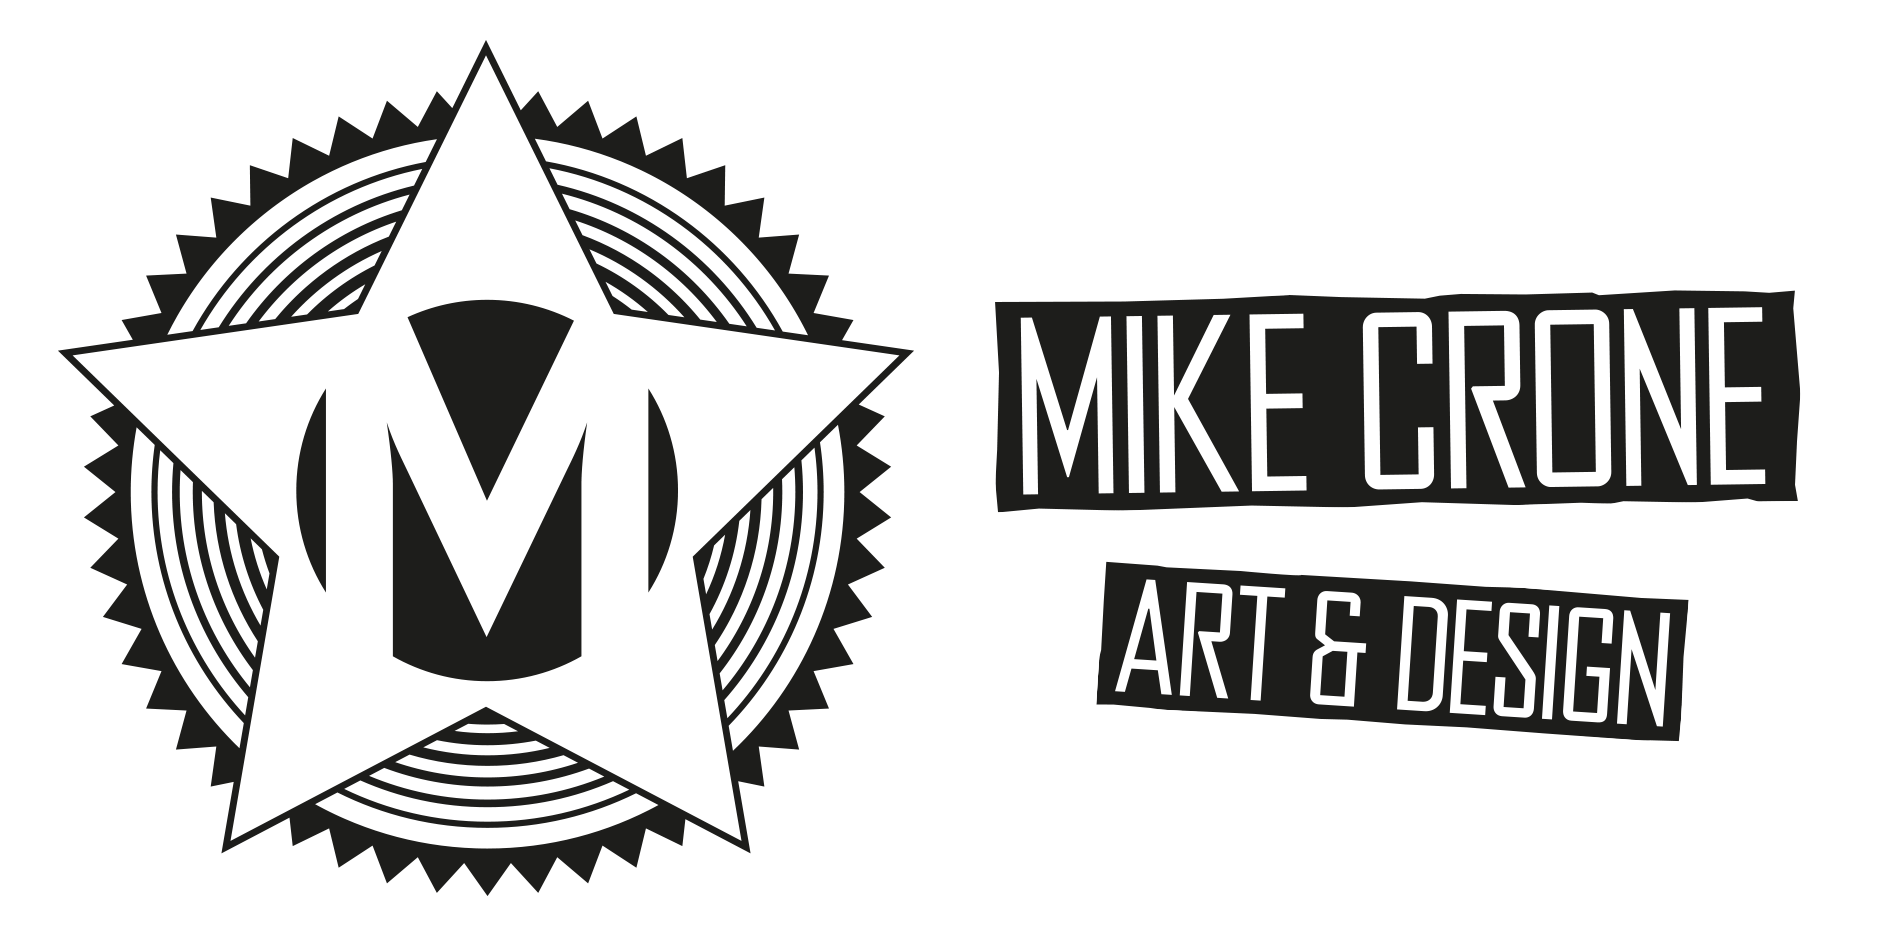 Mike Crone Design Studio Belfast